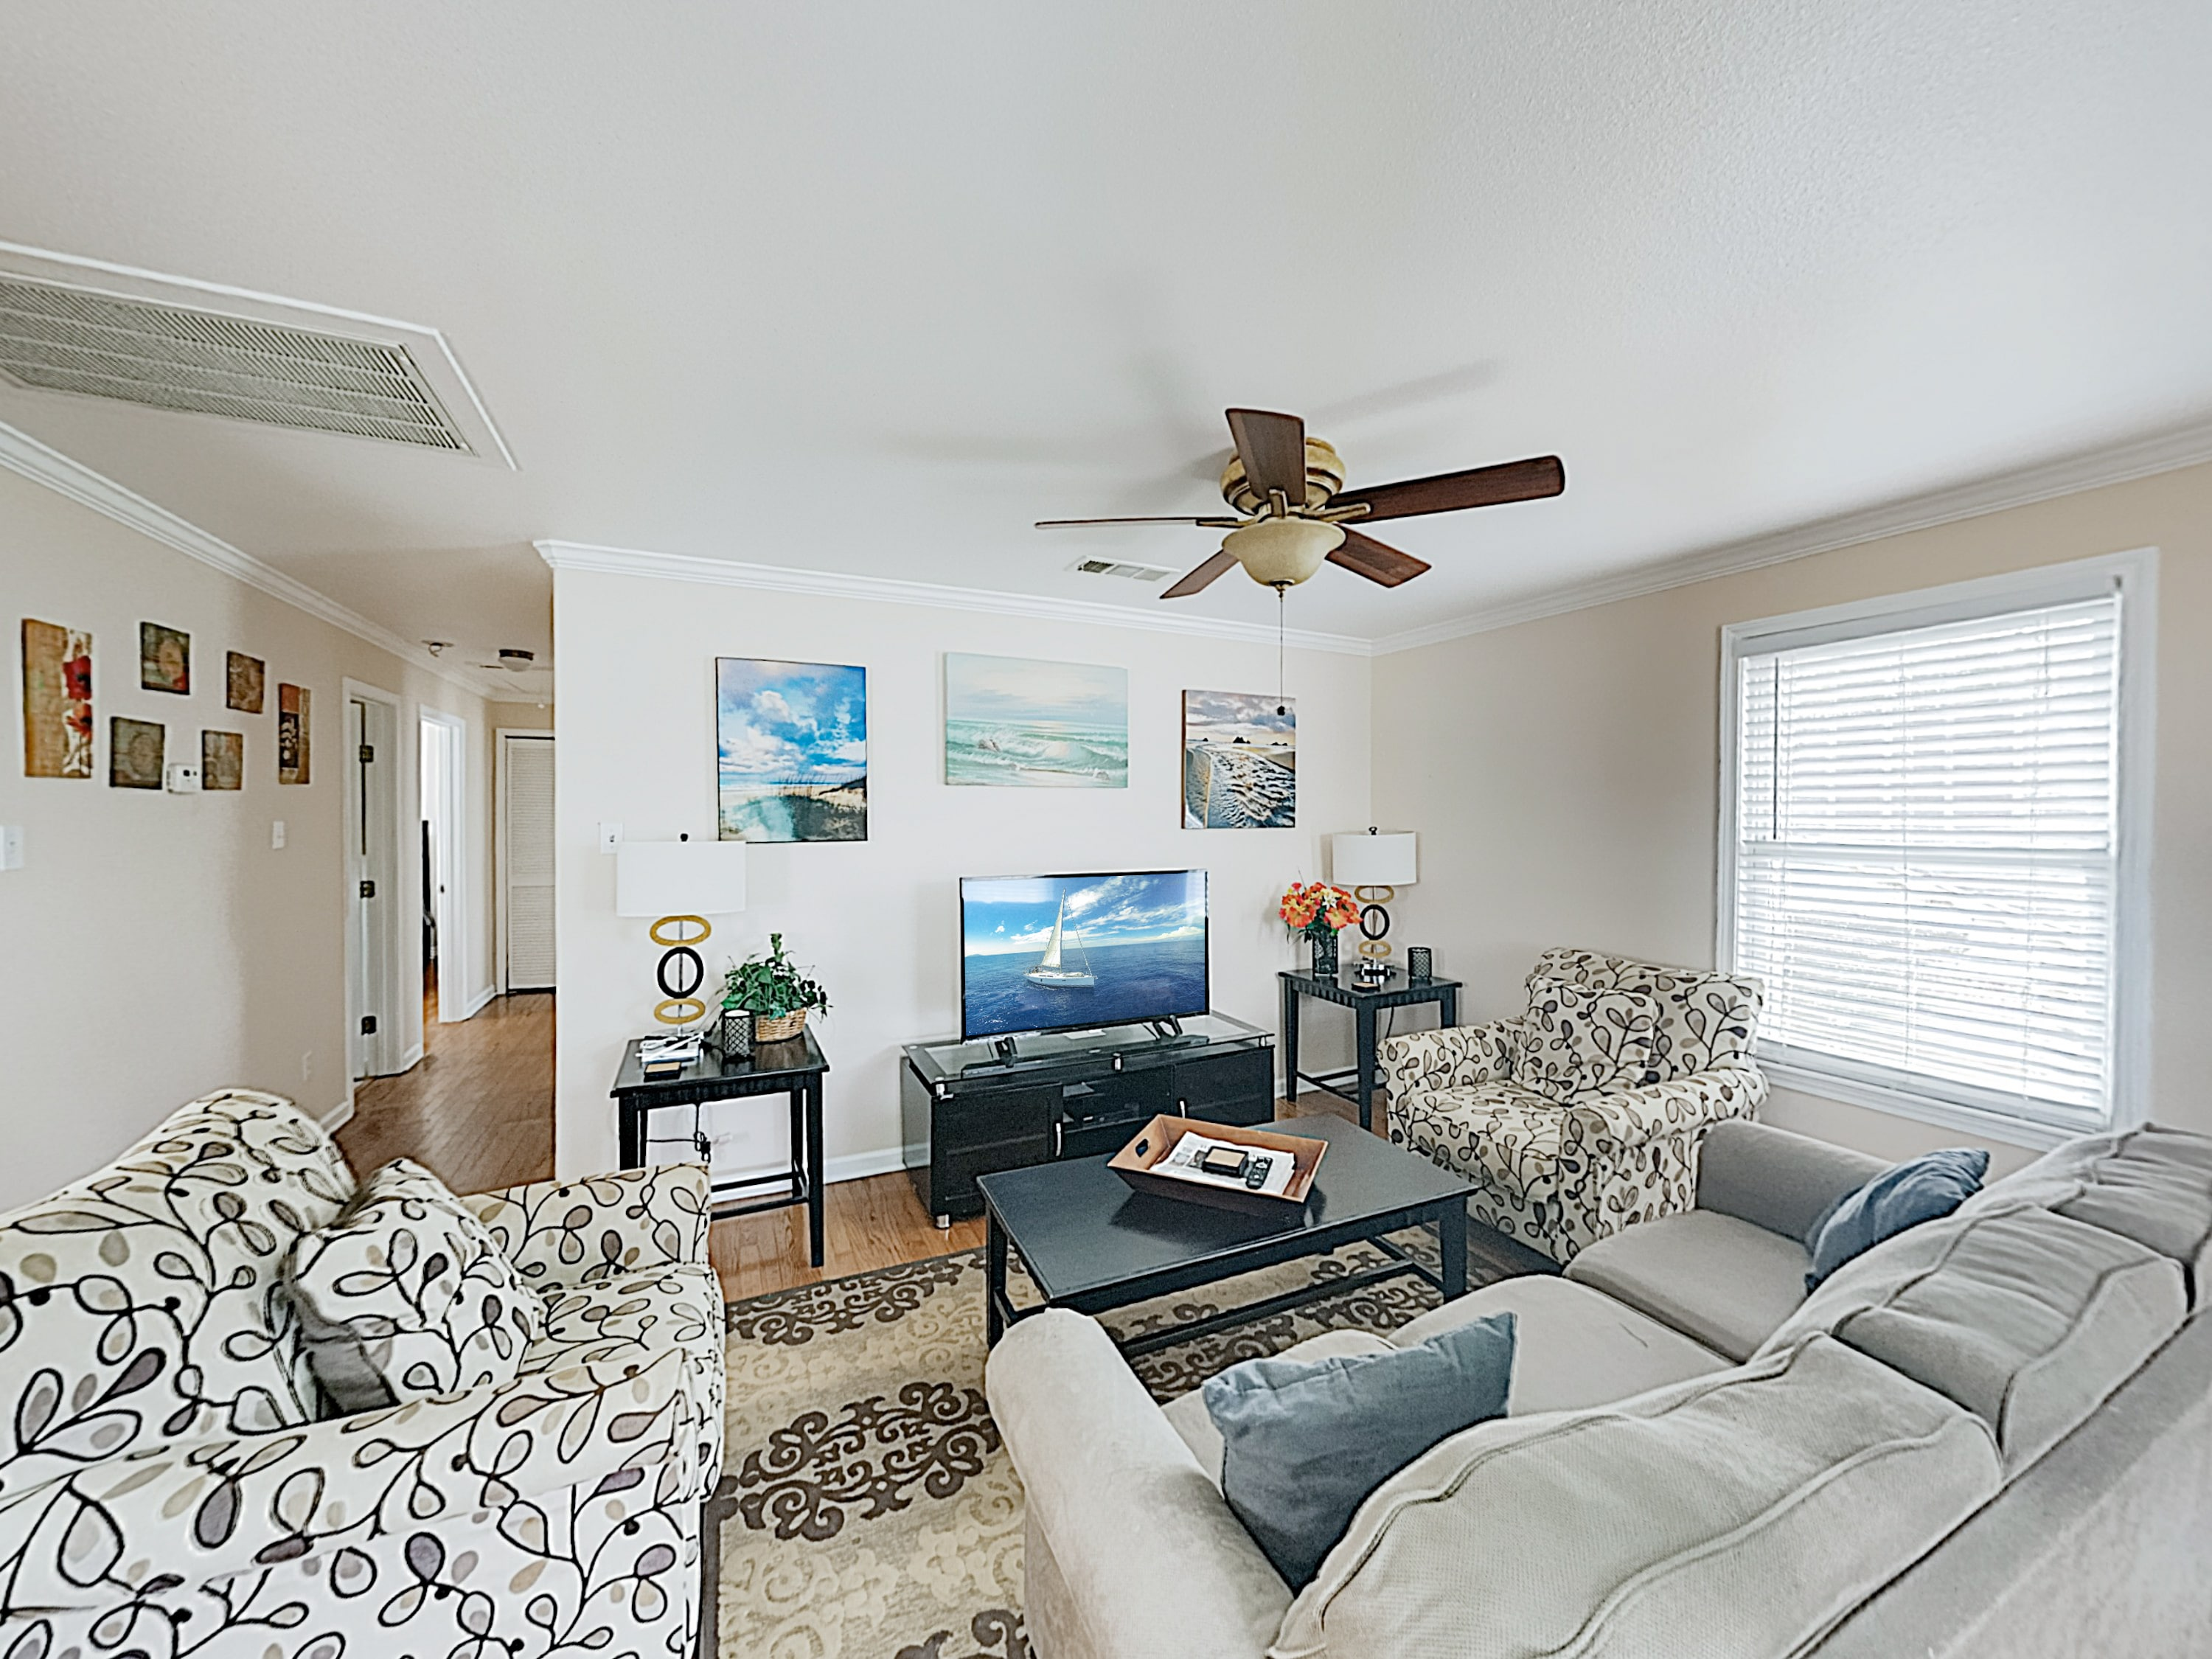 Welcome to Galveston! This home is professionally managed by TurnKey Vacation Rentals.